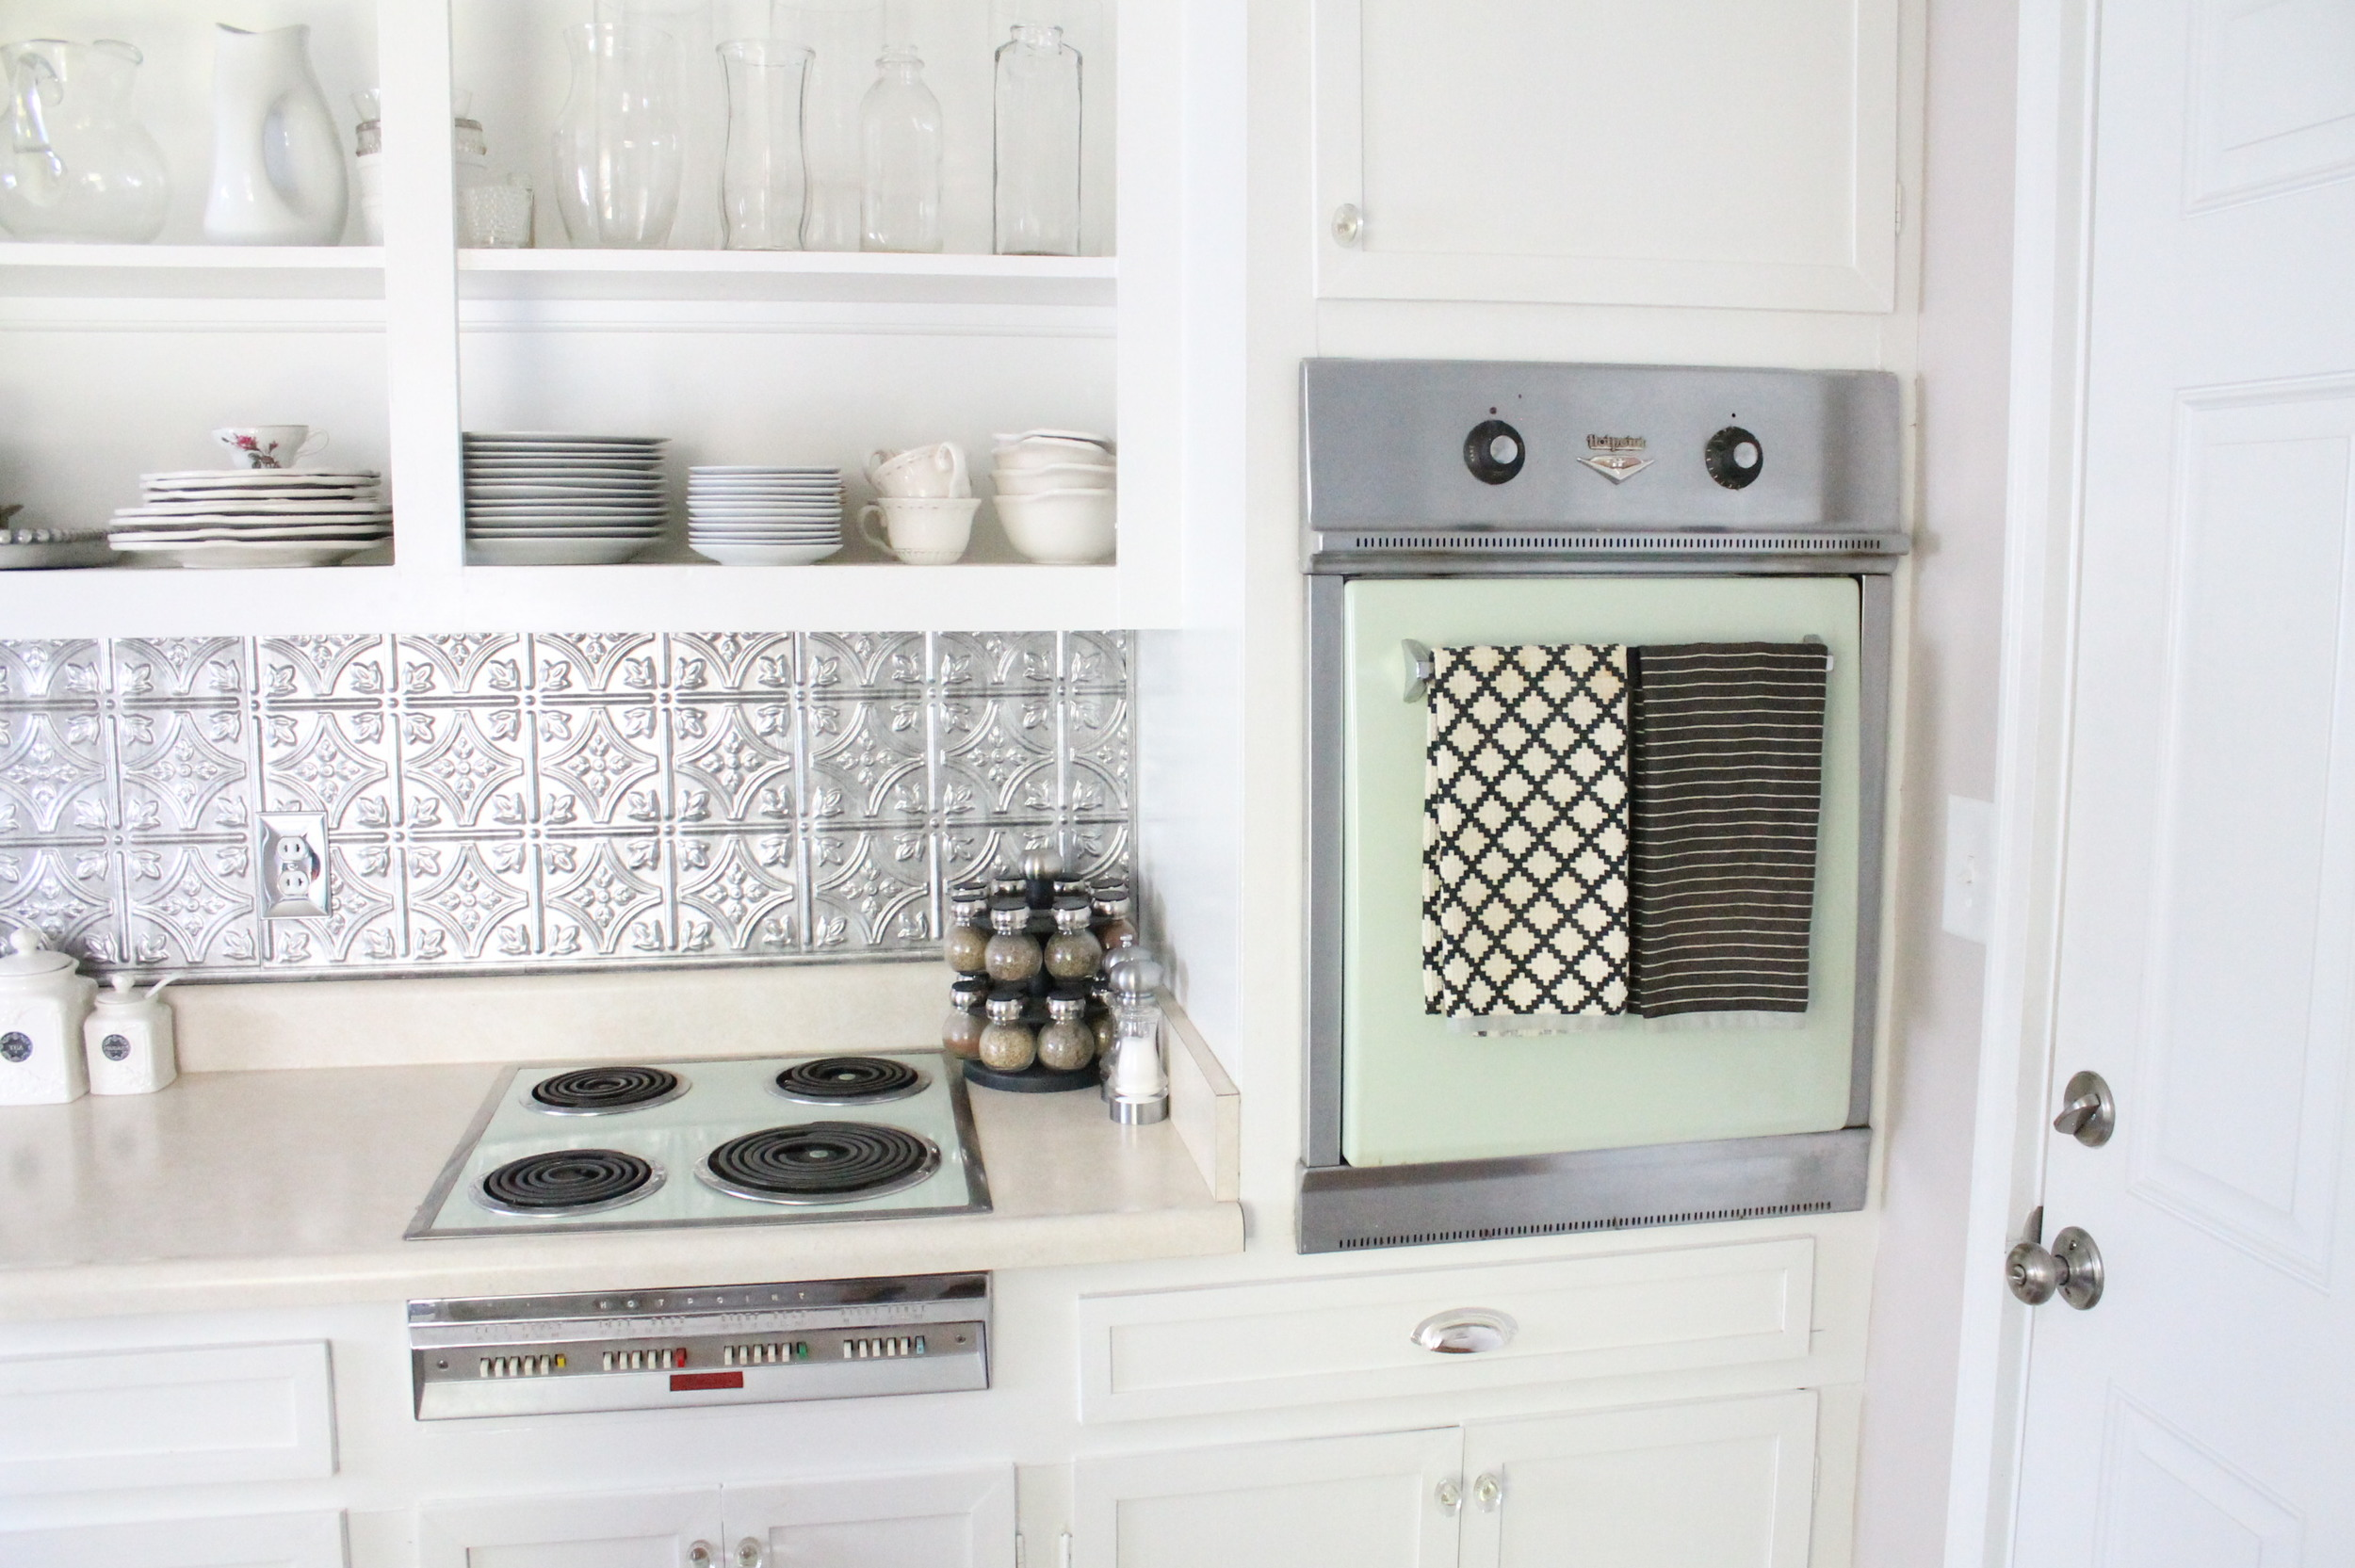 EB Loves Old Houses | How to Add Trim to Old Cabinets